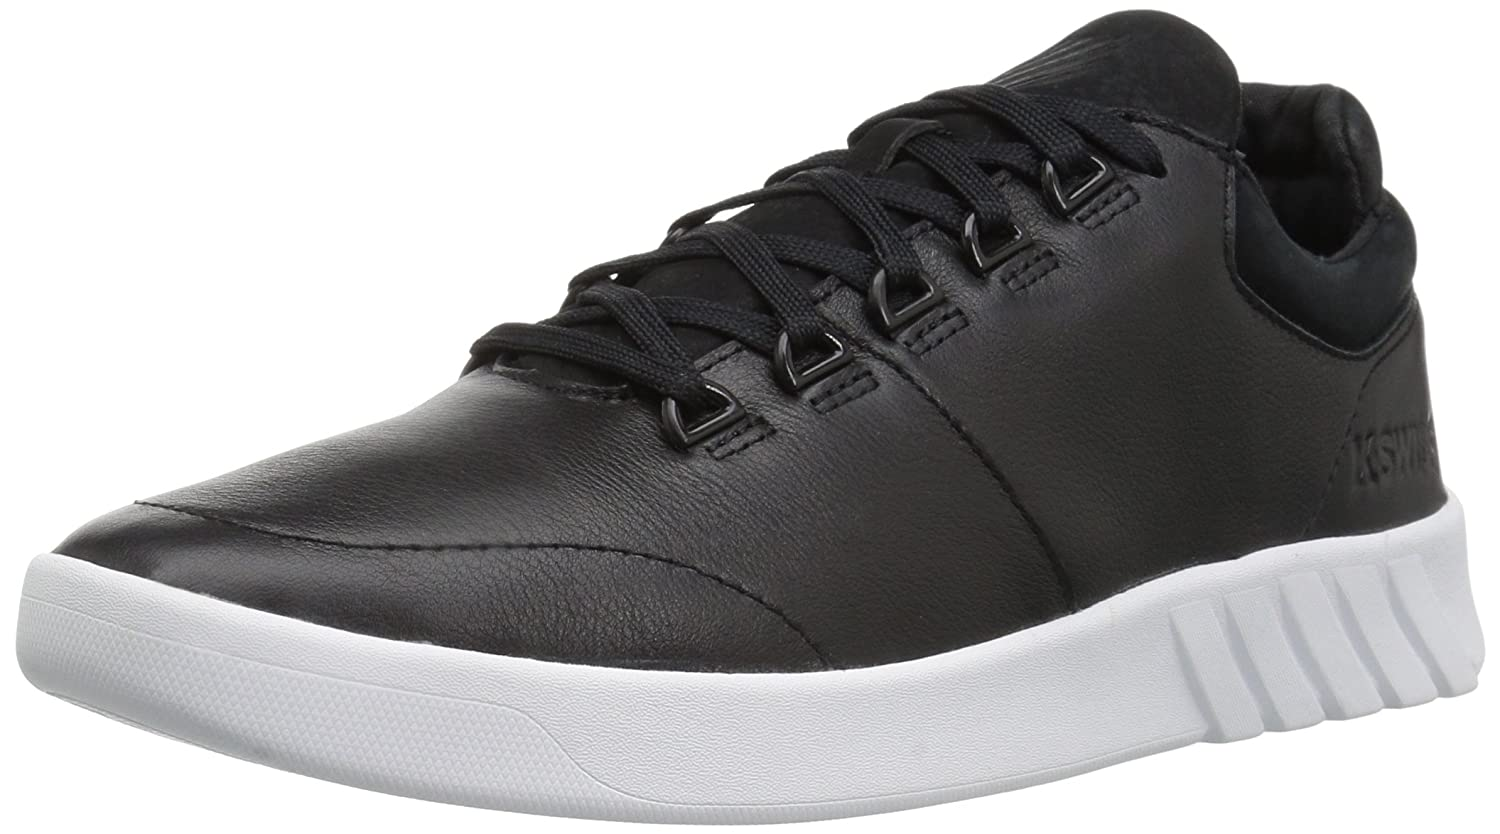 K-Swiss Women's Aero Trainer Sneaker B01MRBSWK8 7.5 B(M) US|Black/White